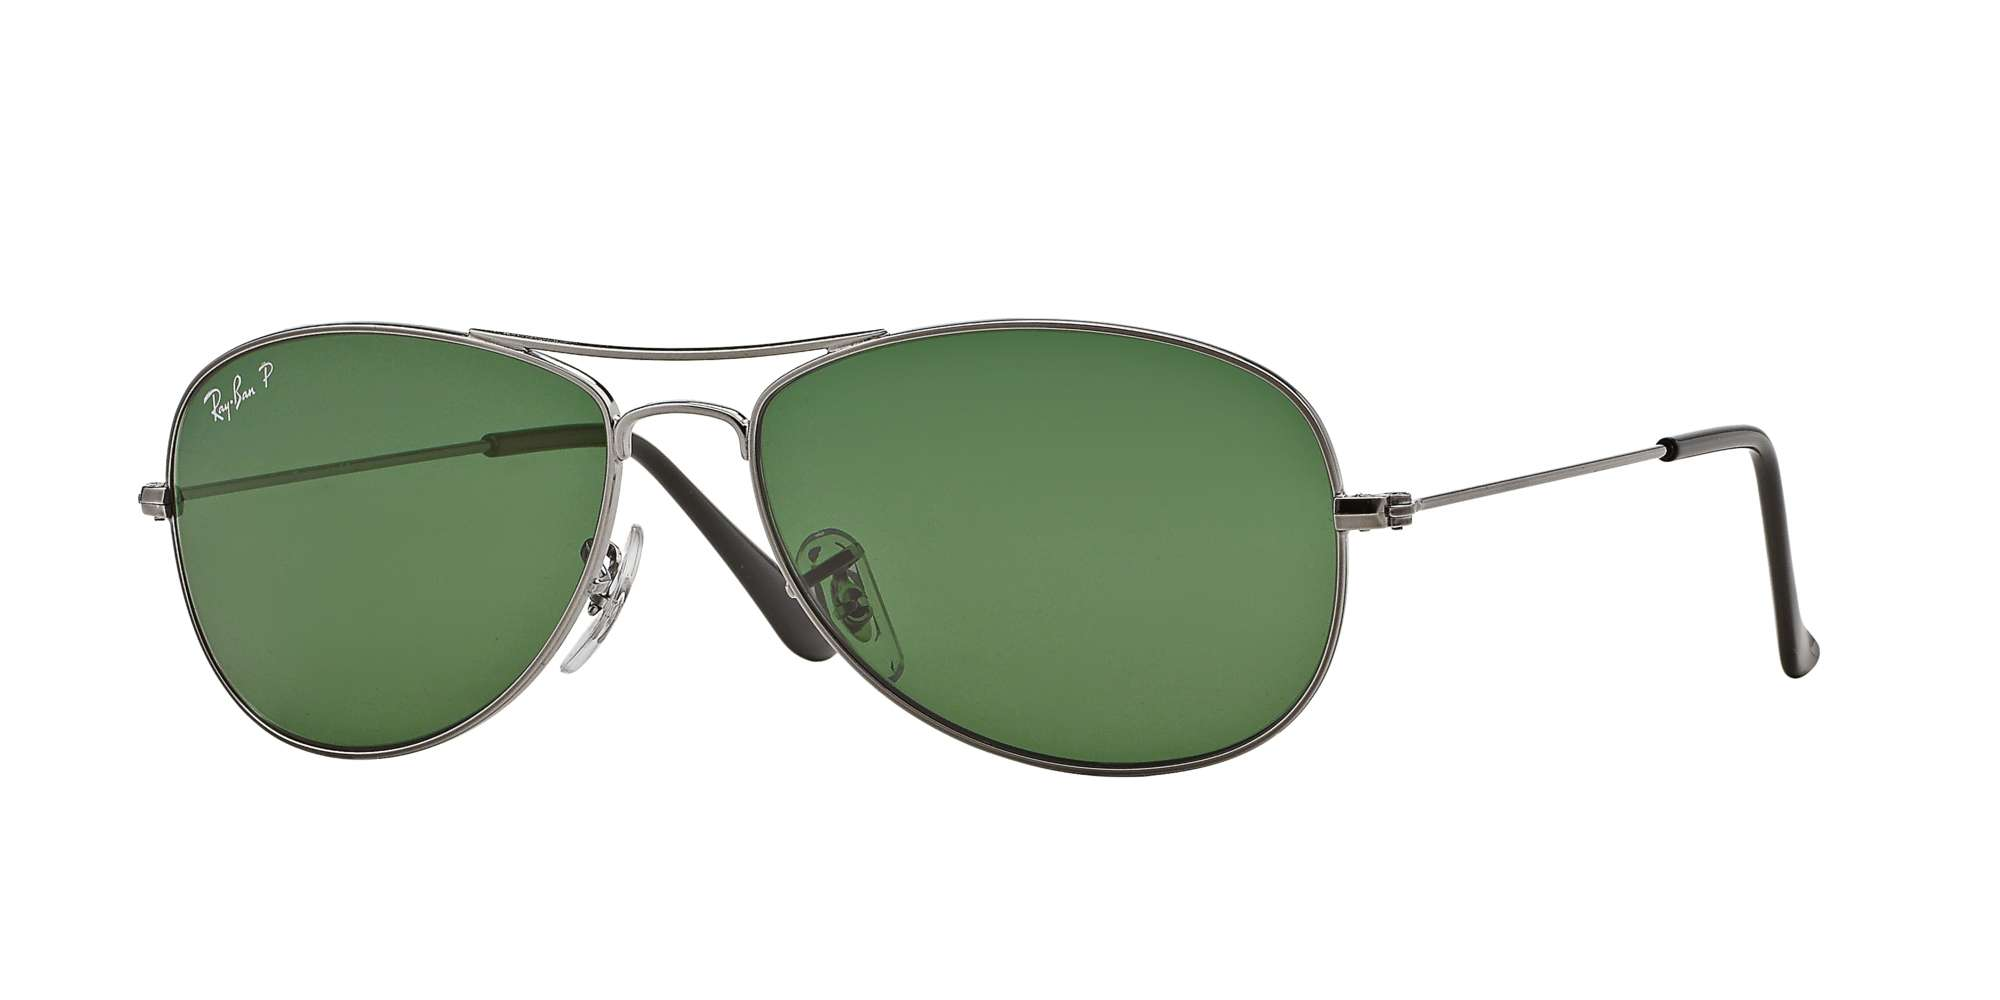 GUNMETAL / CRYSTAL GREEN POLARIZED lenses